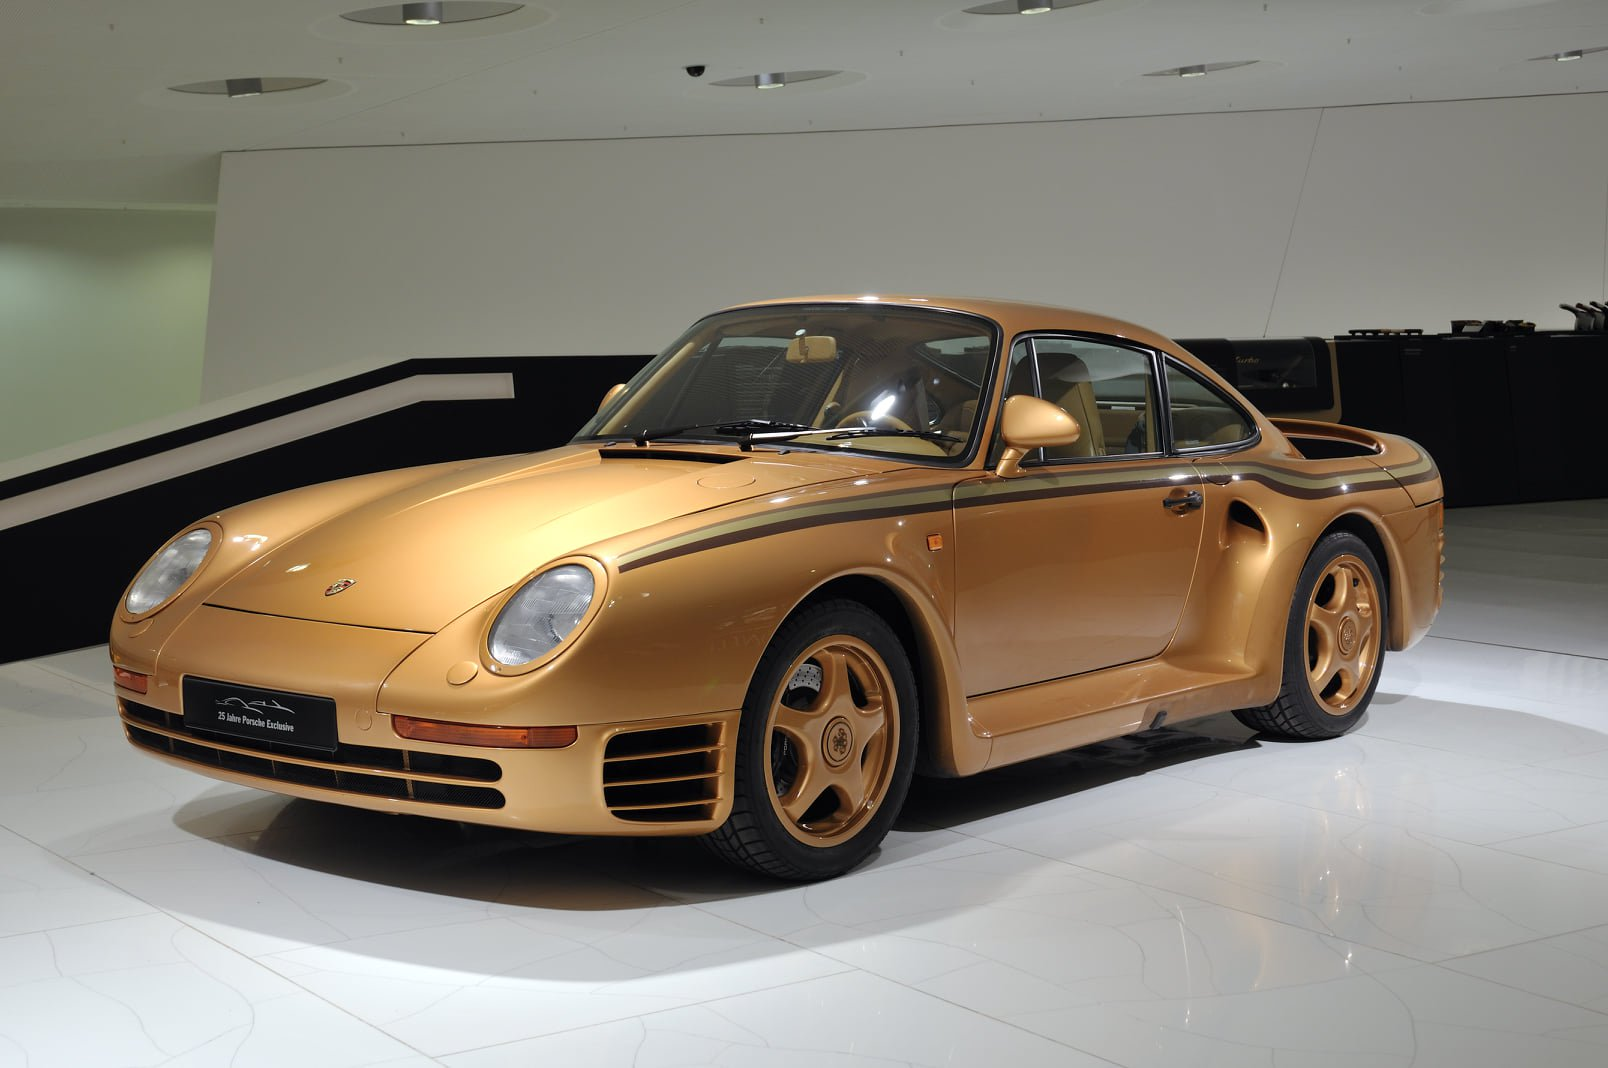 e2f1a34a-porsche-exclusive-959-in-gold-built-for-arab-prince-1